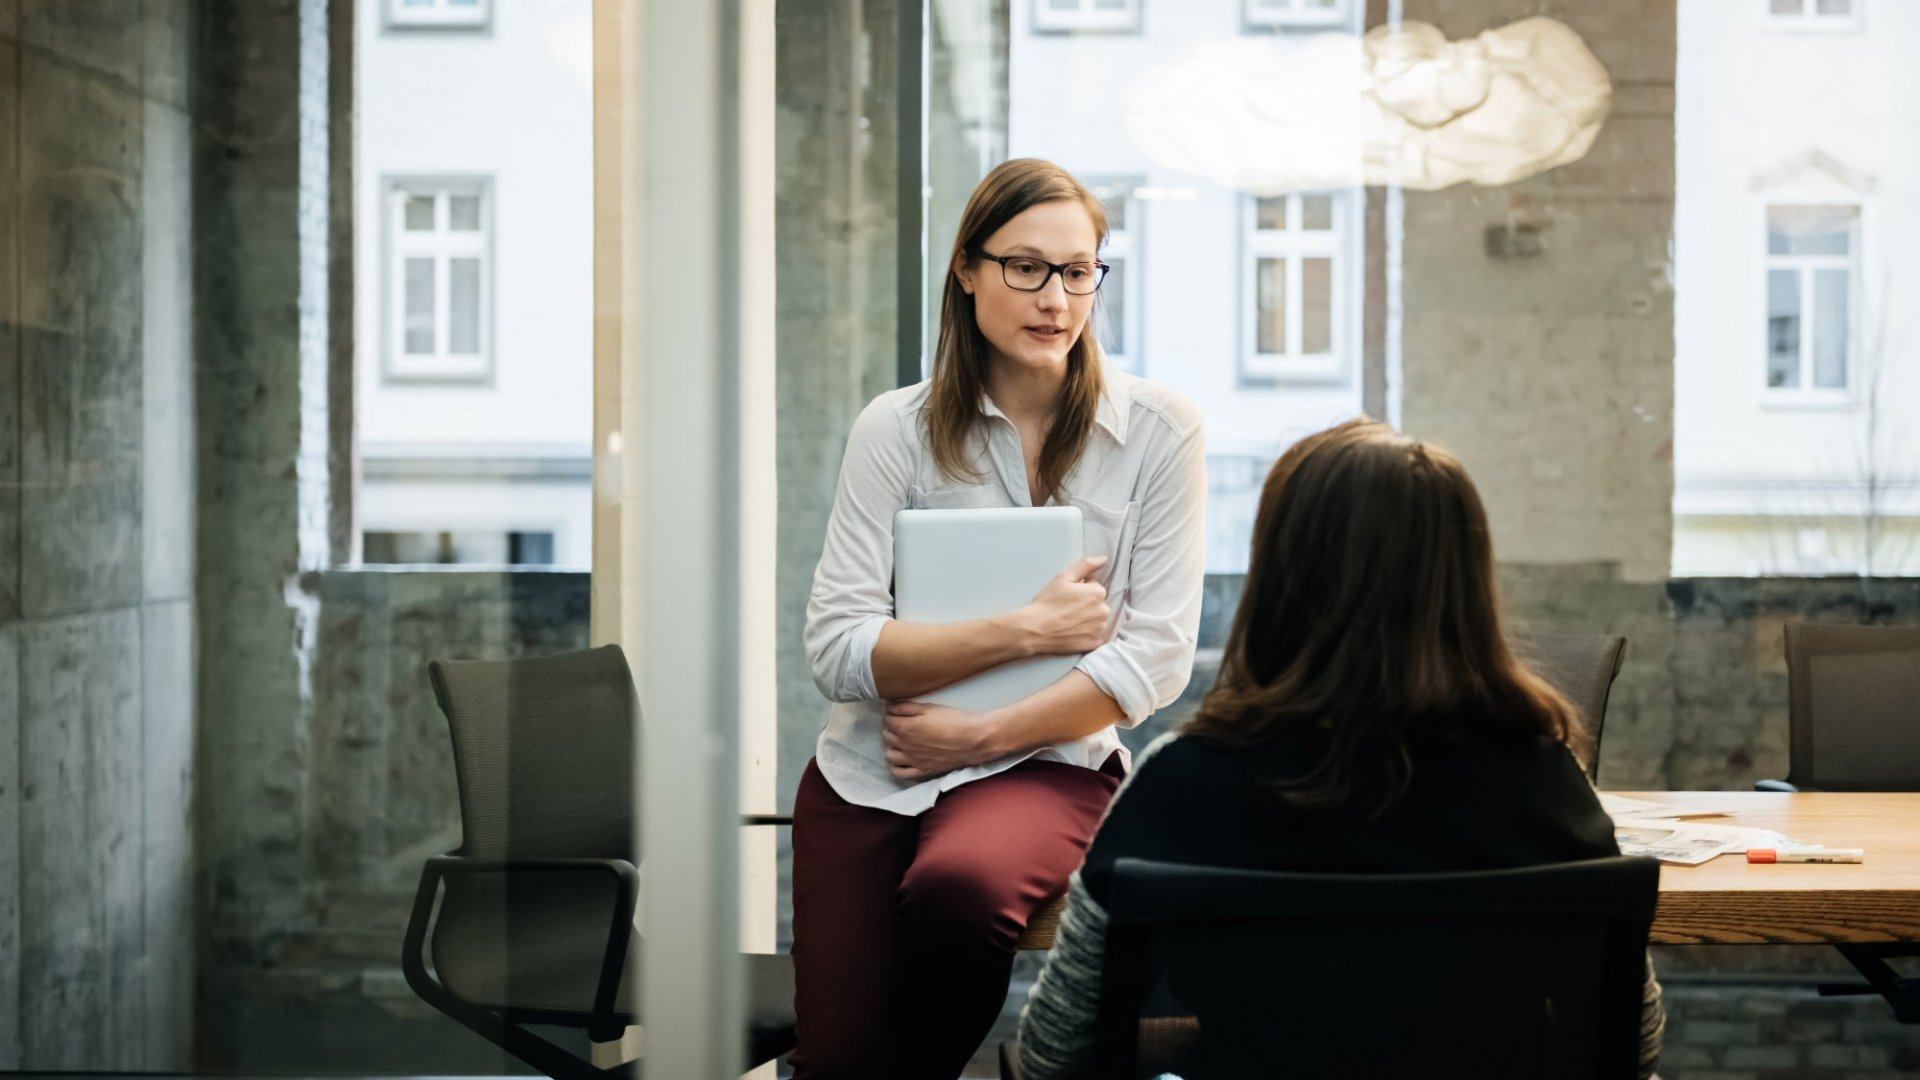 5 Questions the Best Bosses Ask Employees